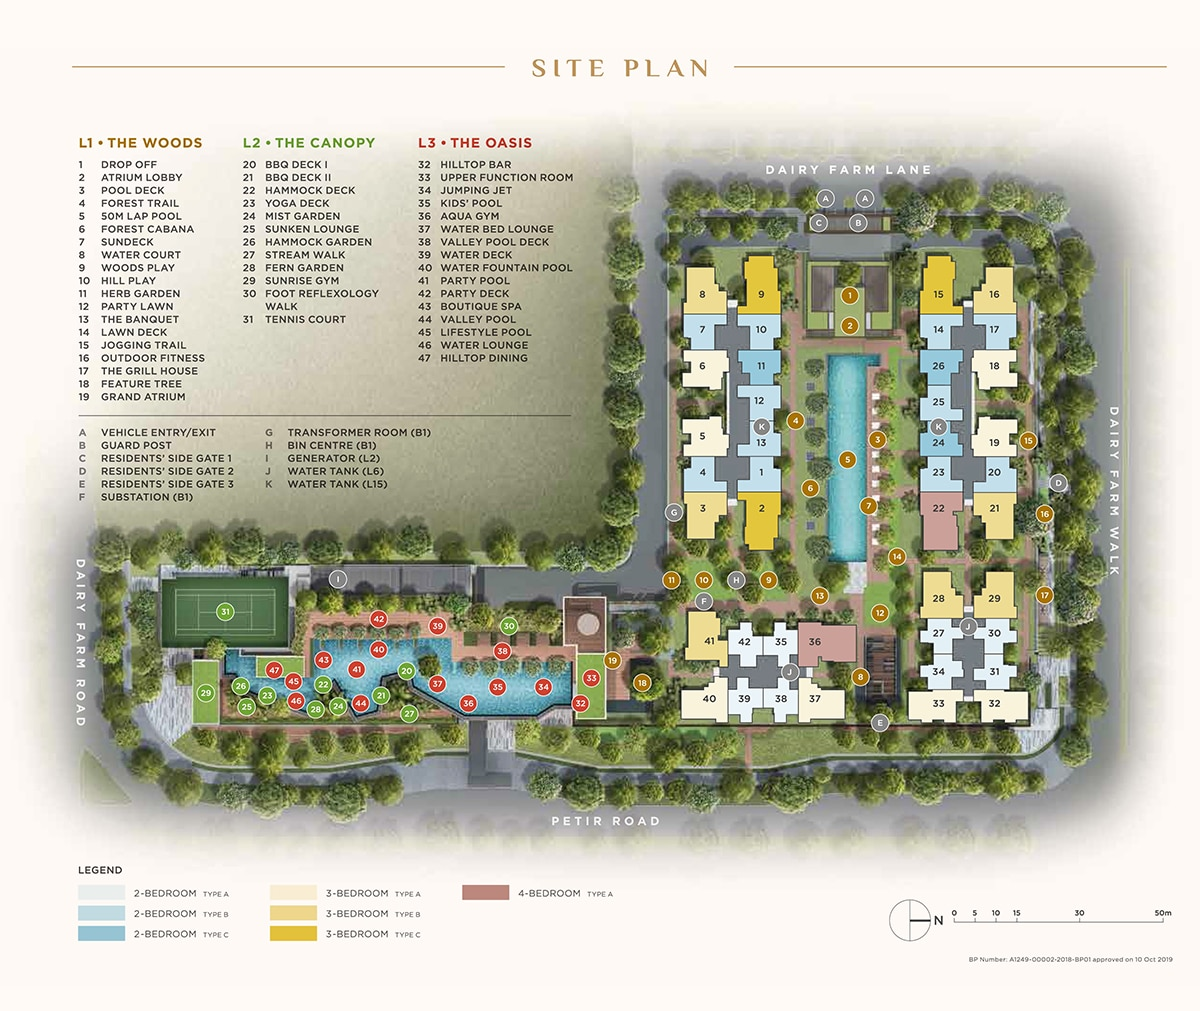 Dairy Farm Reidences Site Plan